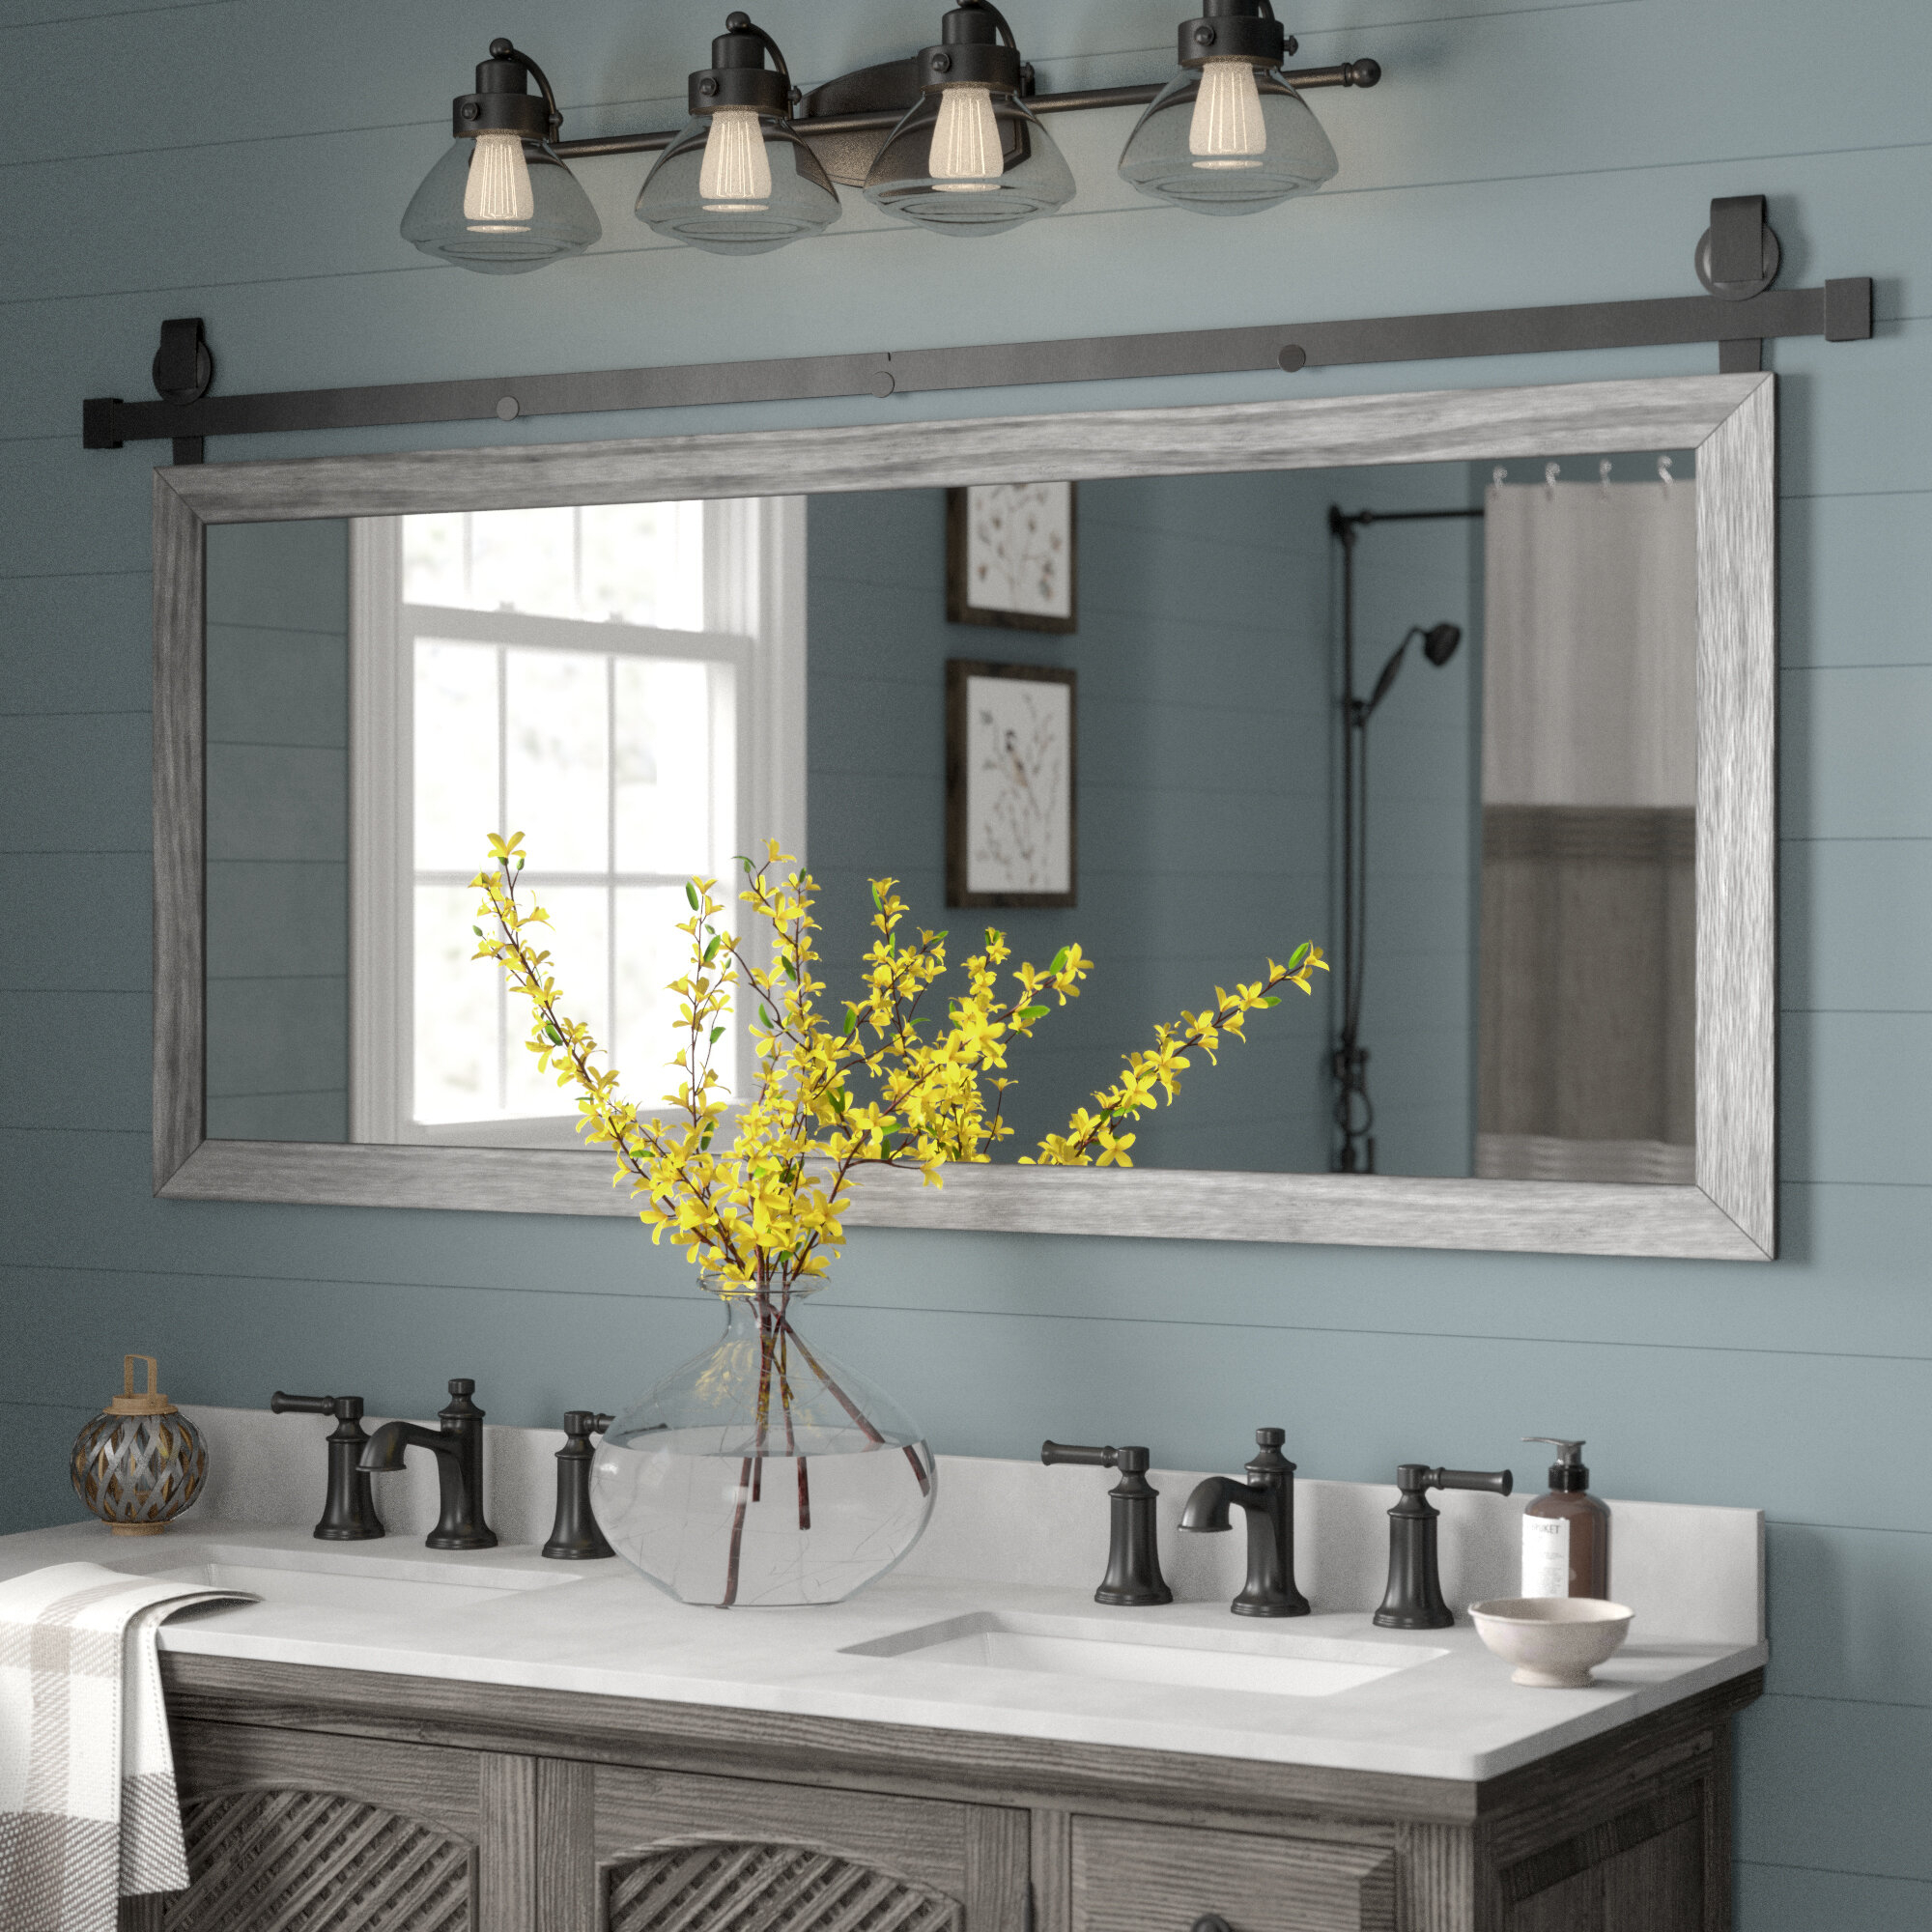 Gracie Oaks Nicholle Bathroom/vanity Mirror & Reviews | Wayfair Intended For Landover Rustic Distressed Bathroom/vanity Mirrors (View 14 of 30)